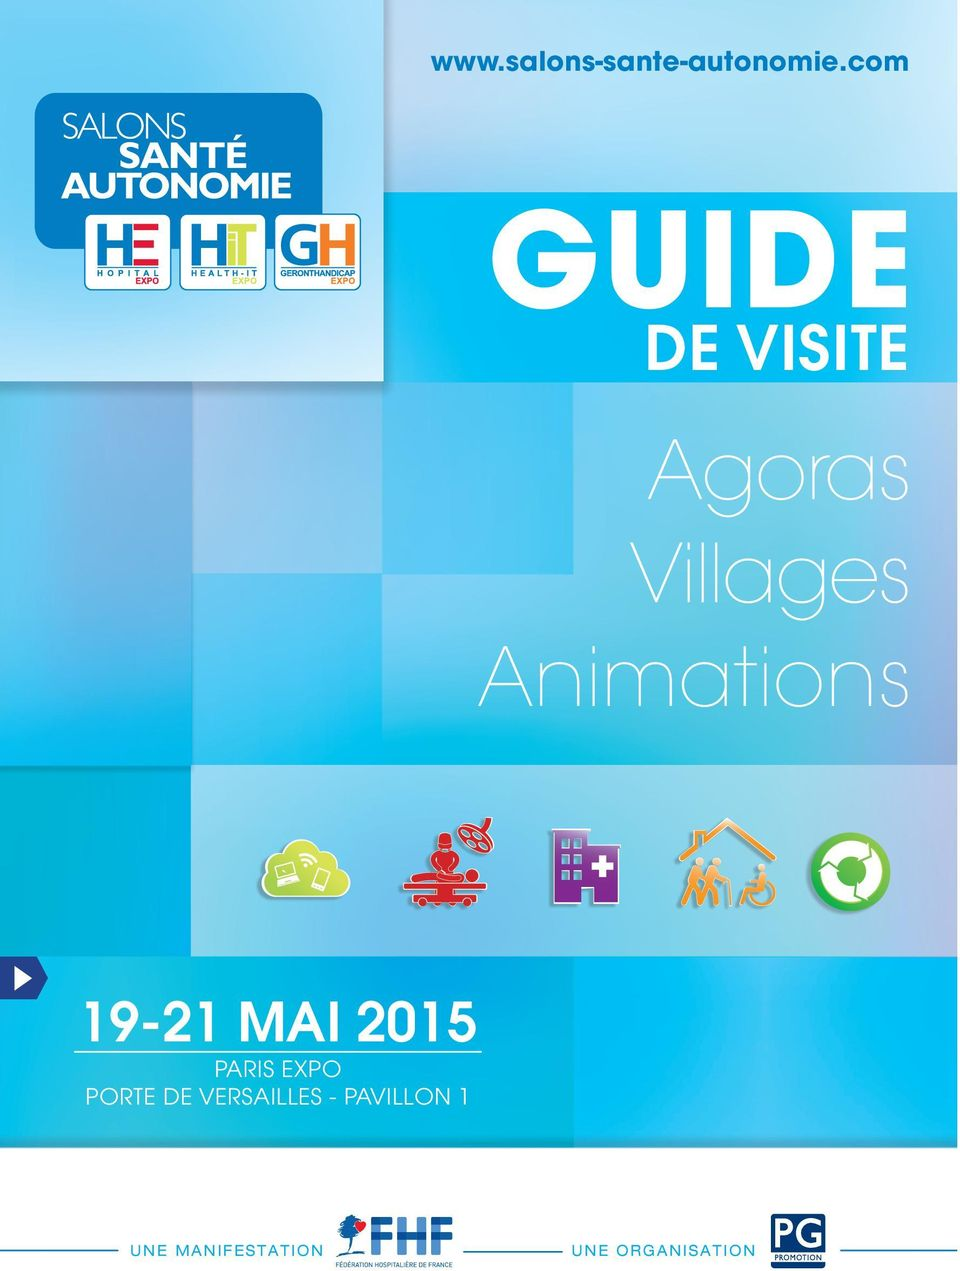 Guide de visite agoras villages animations mai 2015 paris for Salon porte de versailles 30 mai 2015